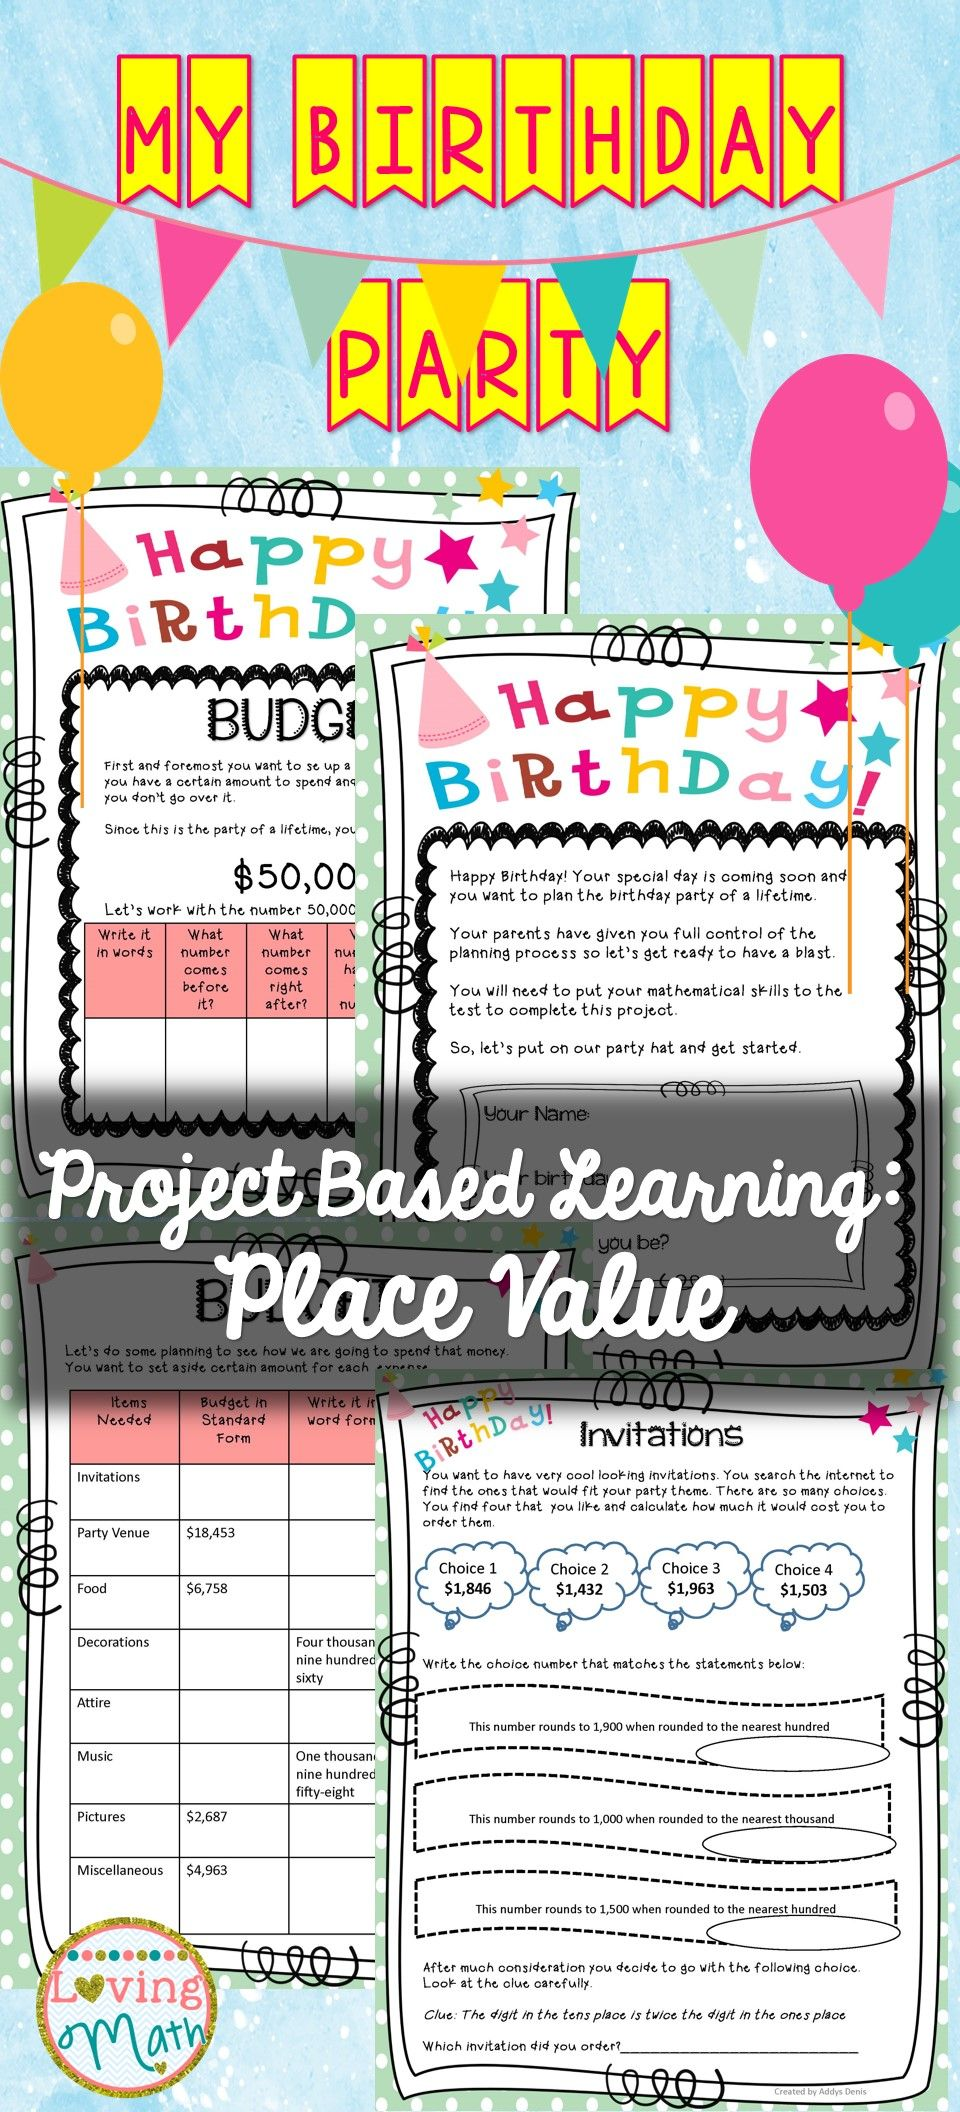 Awesome Project Based Learning Activity Planning My Birthday Party Students Plan Their Dream Place Value Projects Project Based Learning Math Math Projects